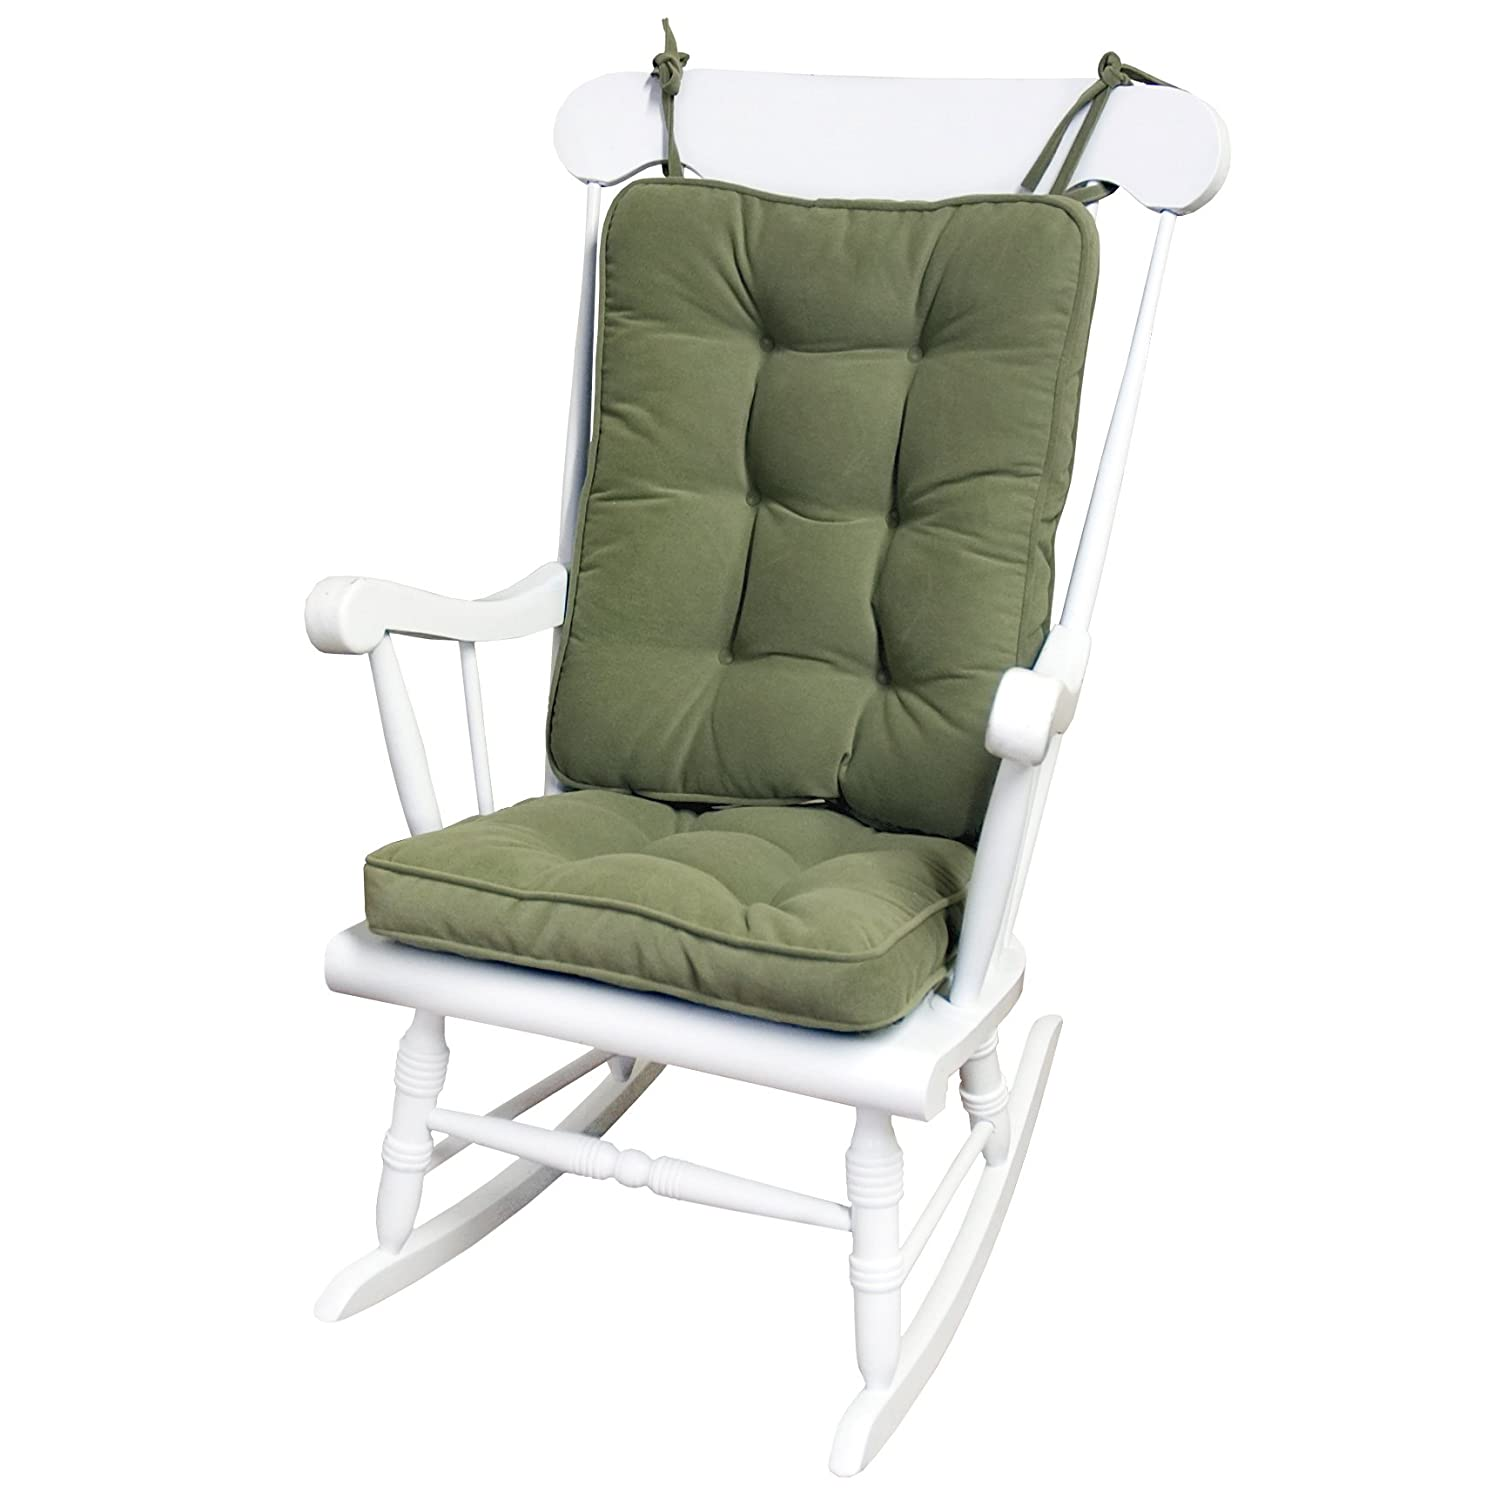 glider rocker chair cushions reclining with ottoman outdoor greendale home fashions standard rocking cushion